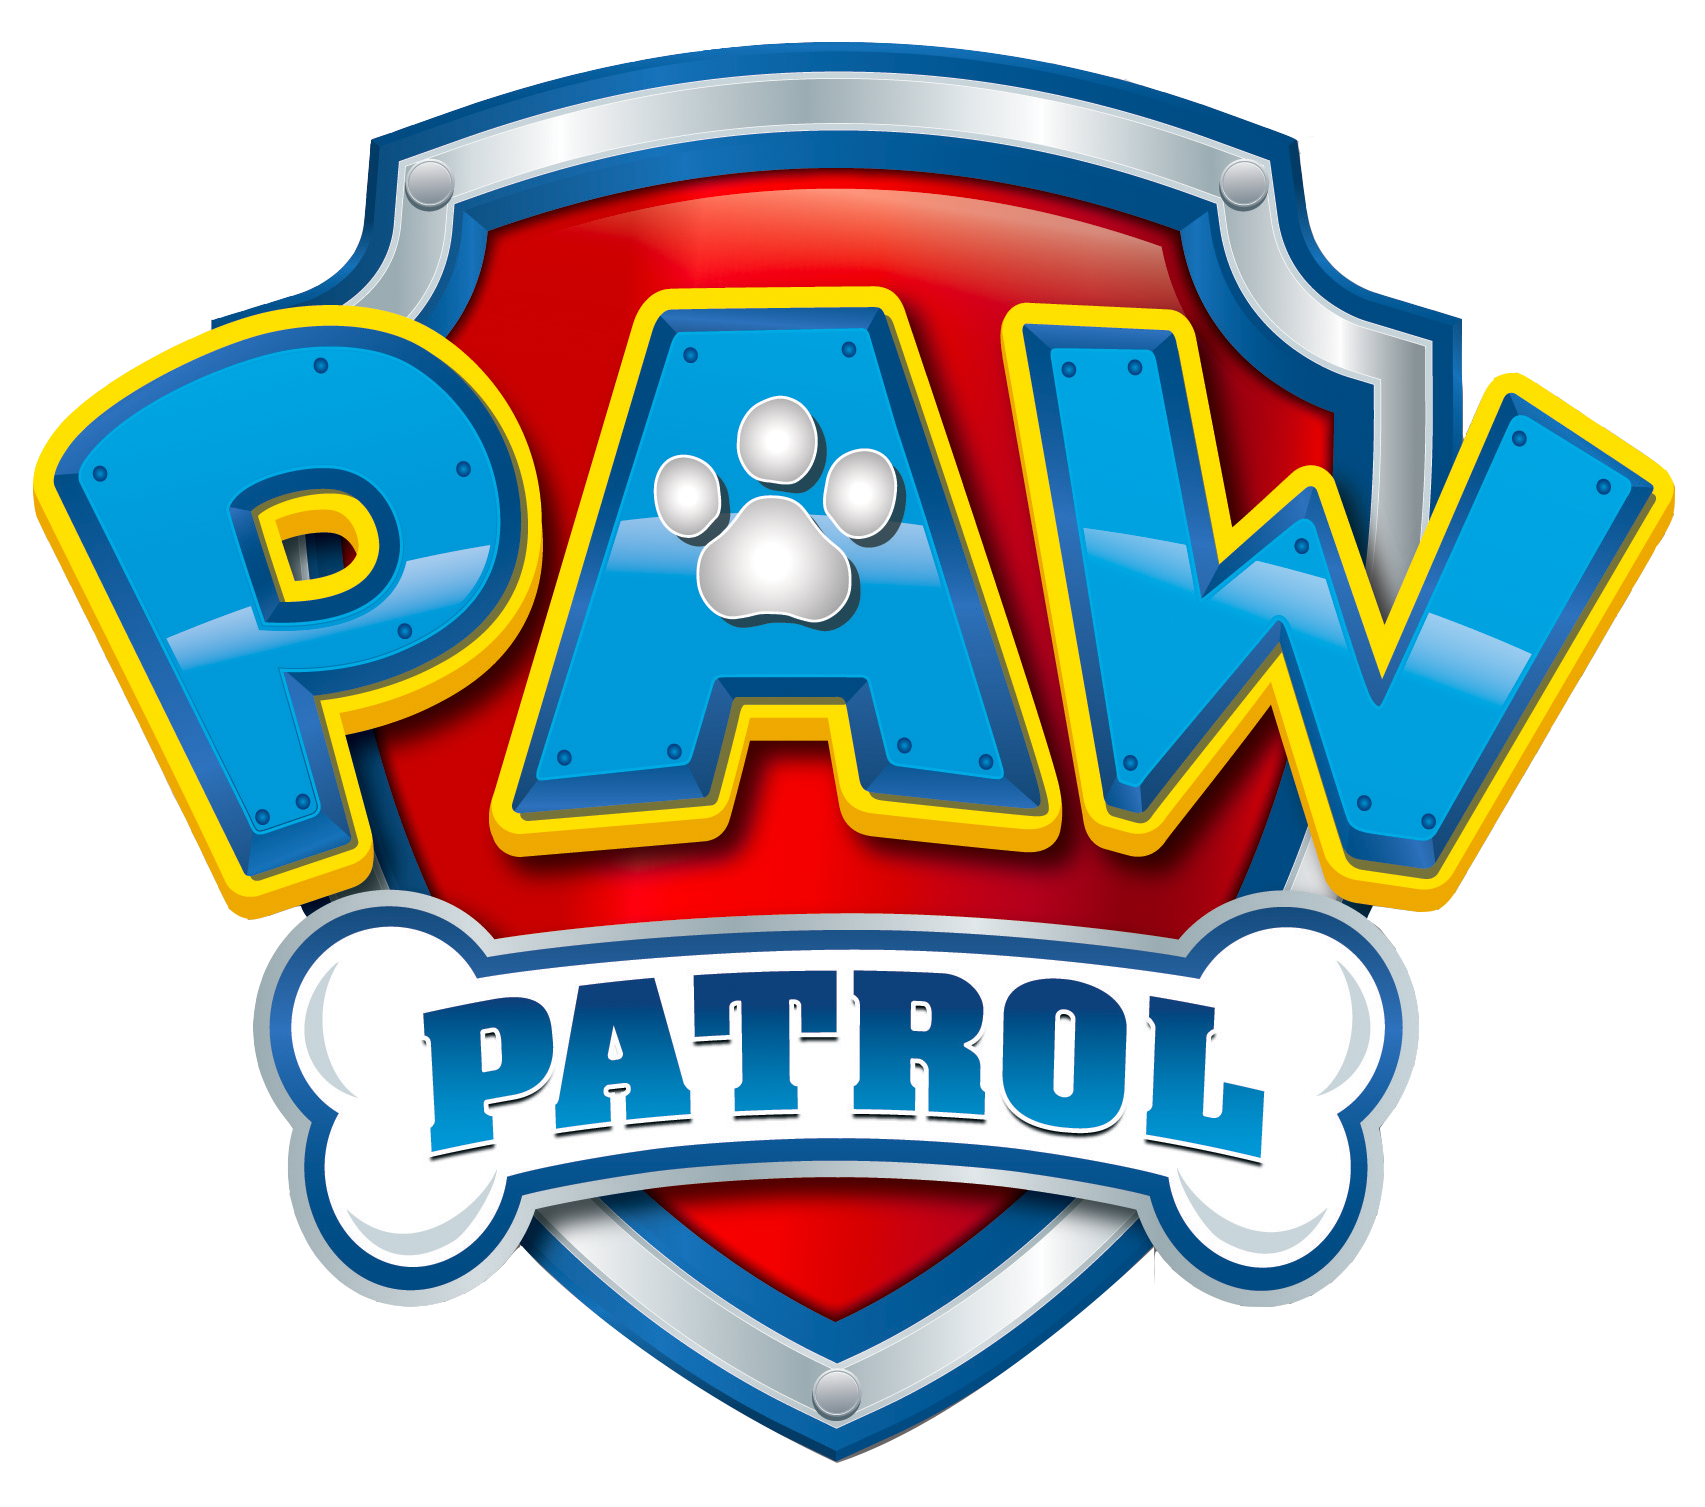 Paw patrol badges png. Logo no background pinterest